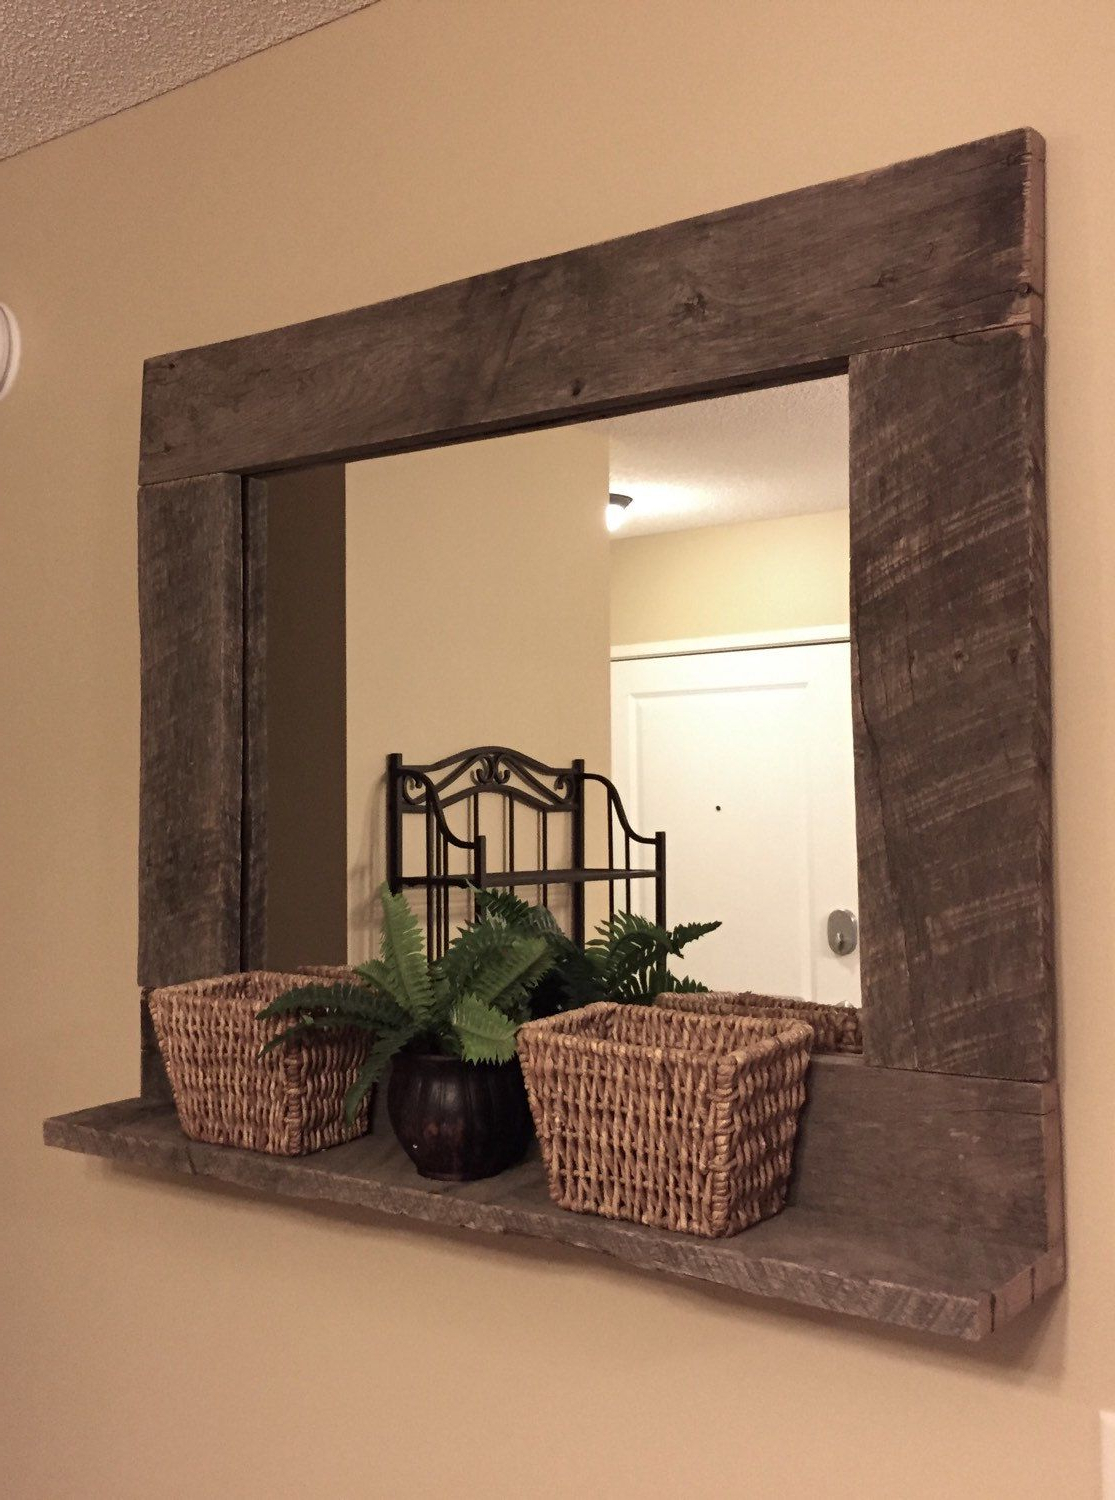 2020 Rustic Wood Mirror Pallet Furniture Rustic Home Decor Large Within Large Wood Wall Mirrors (View 3 of 20)